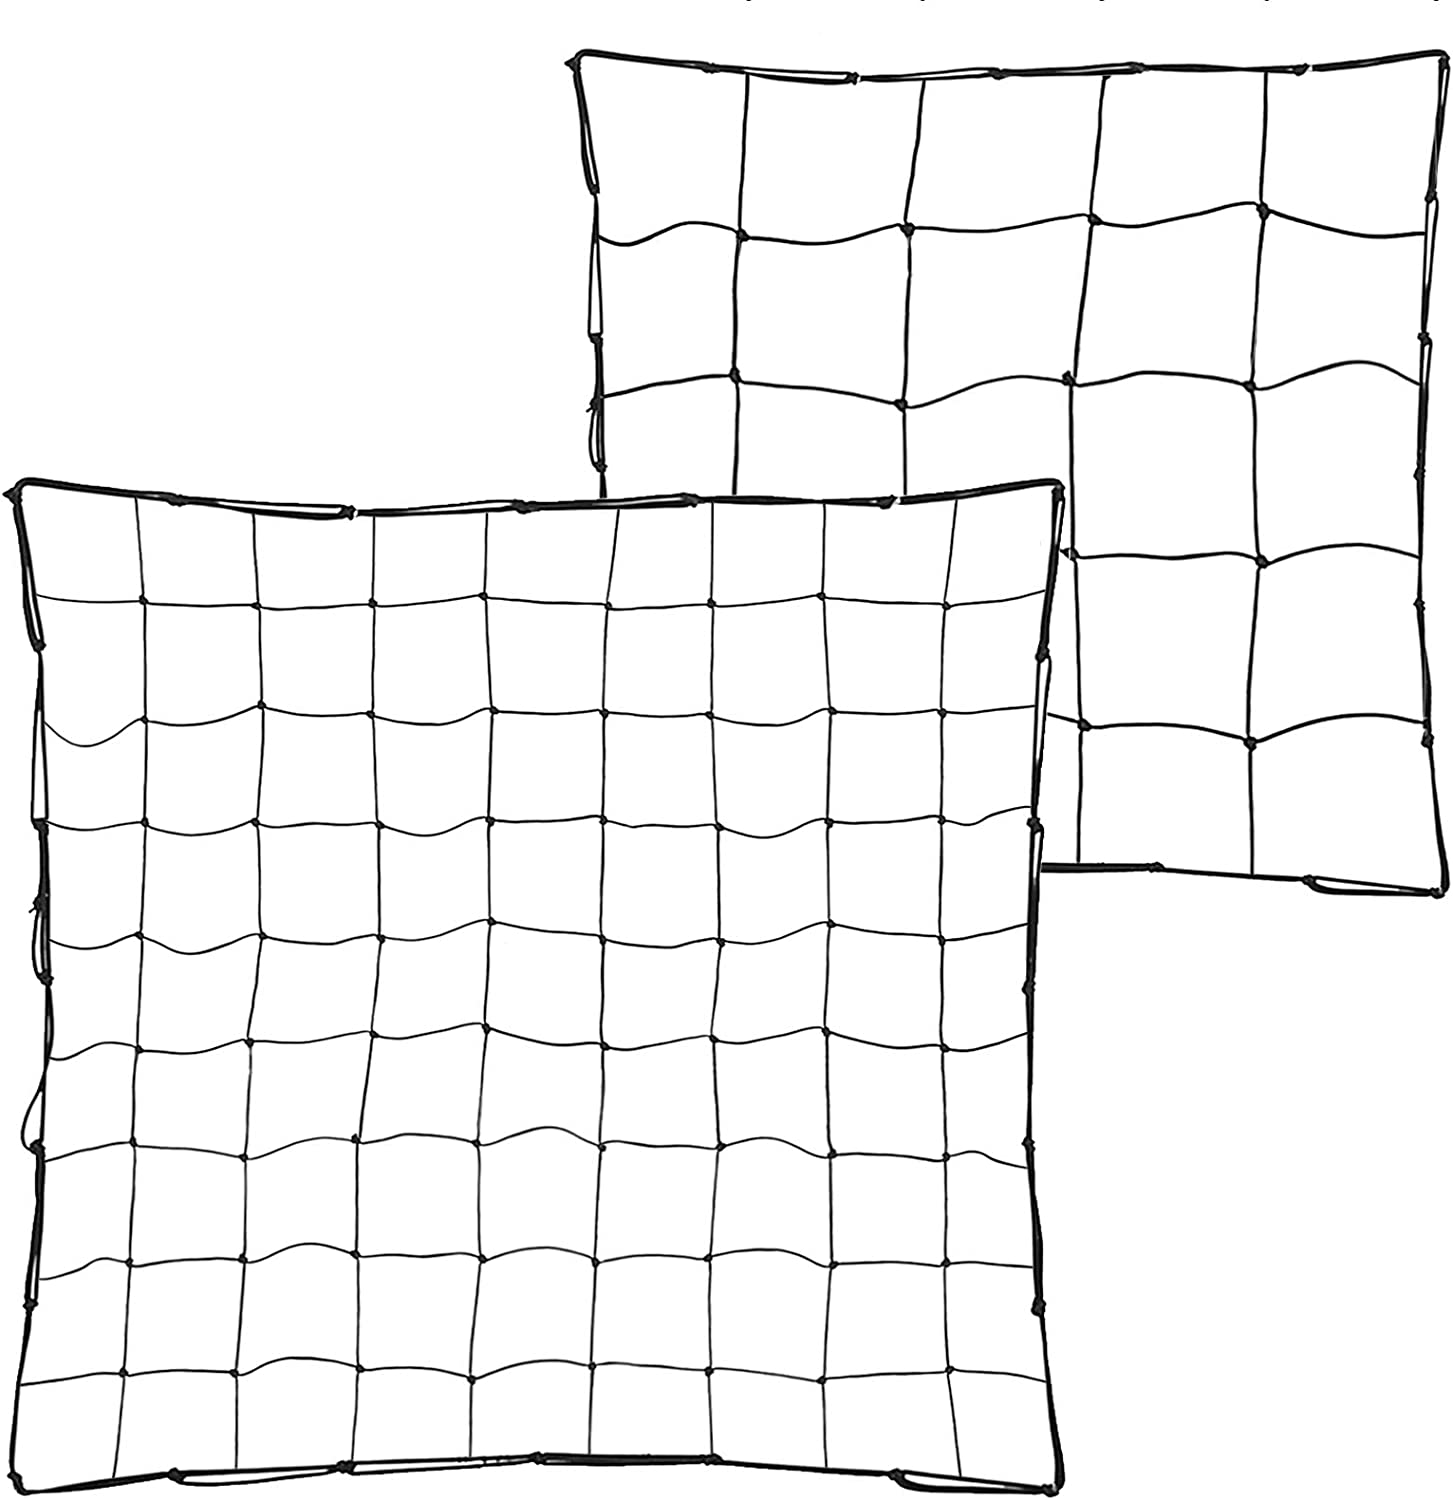 GARDENAID Trellis Netting for Grow Tent 4x4 FT Flexible Net Trellis with 8 Steel Hooks (30 Inches and 36 Inches)